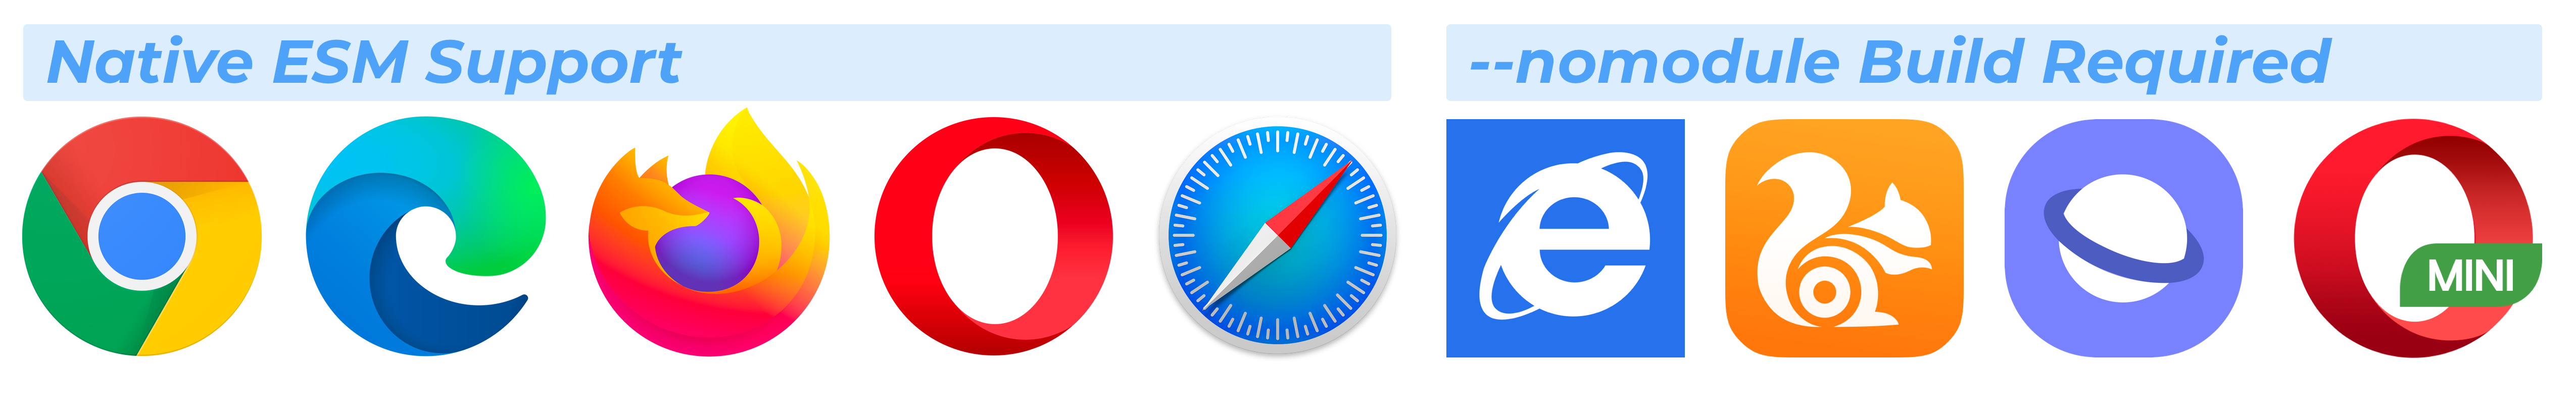 legacy browser icons